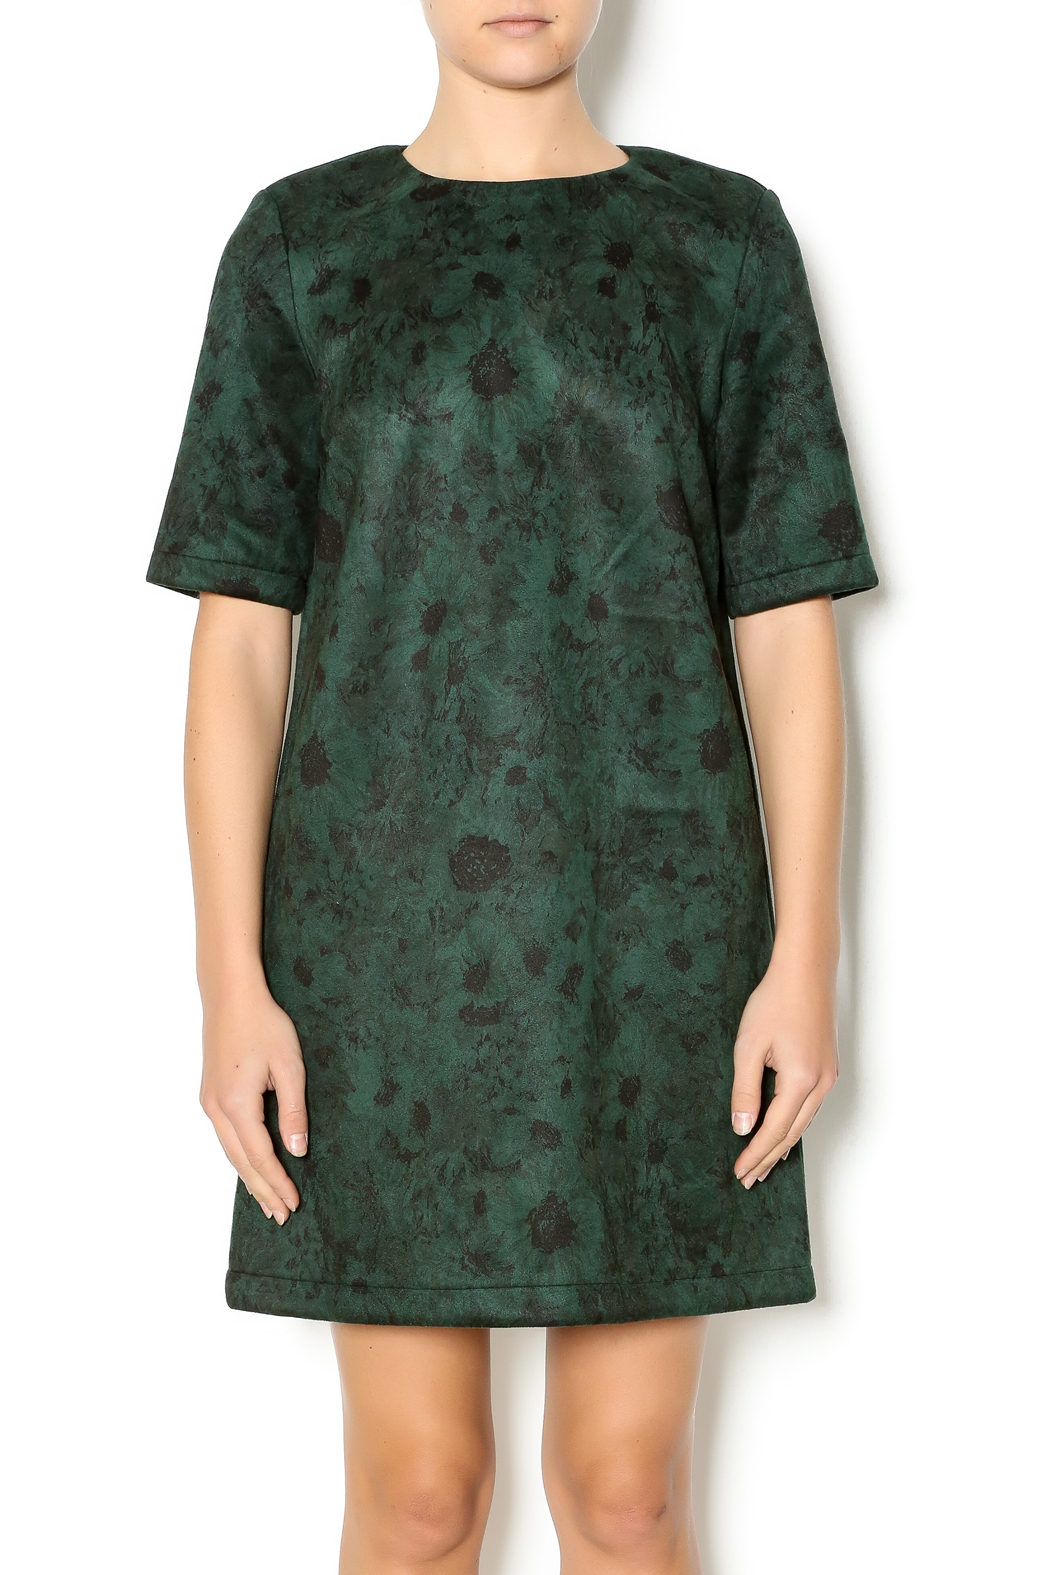 FRNCH Floral Suede Dress - Front Cropped Image